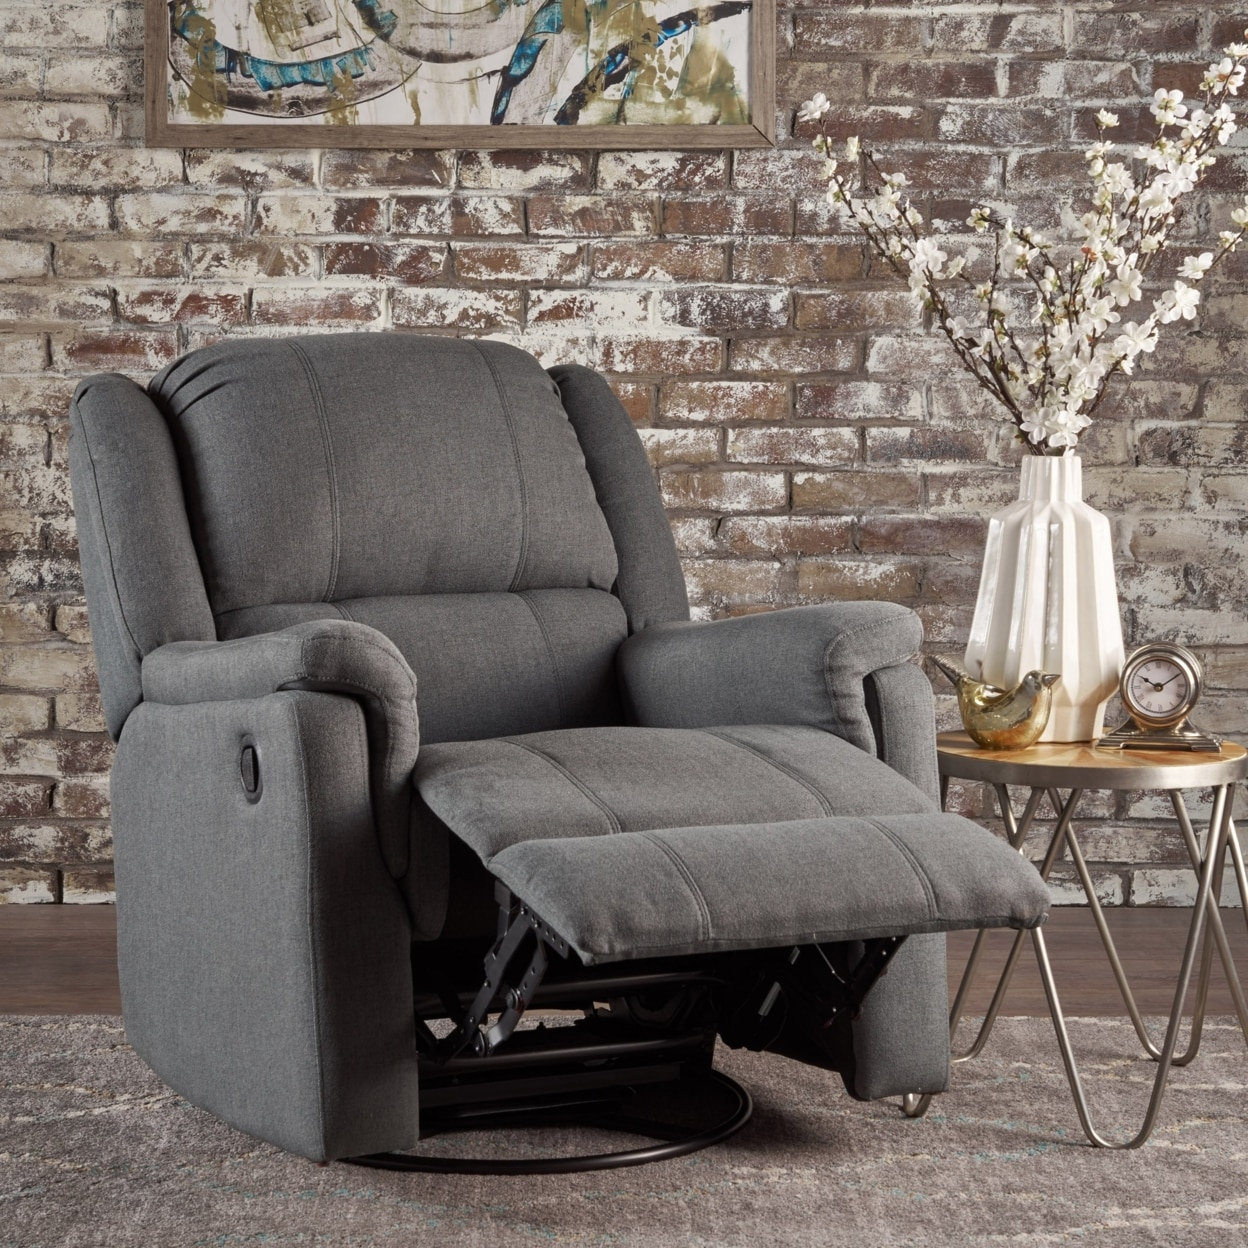 Jemma Tufted Fabric Swivel Gliding Recliner Chair In Living Room Within Decker Ii Fabric Swivel Glider Recliners (Image 18 of 25)